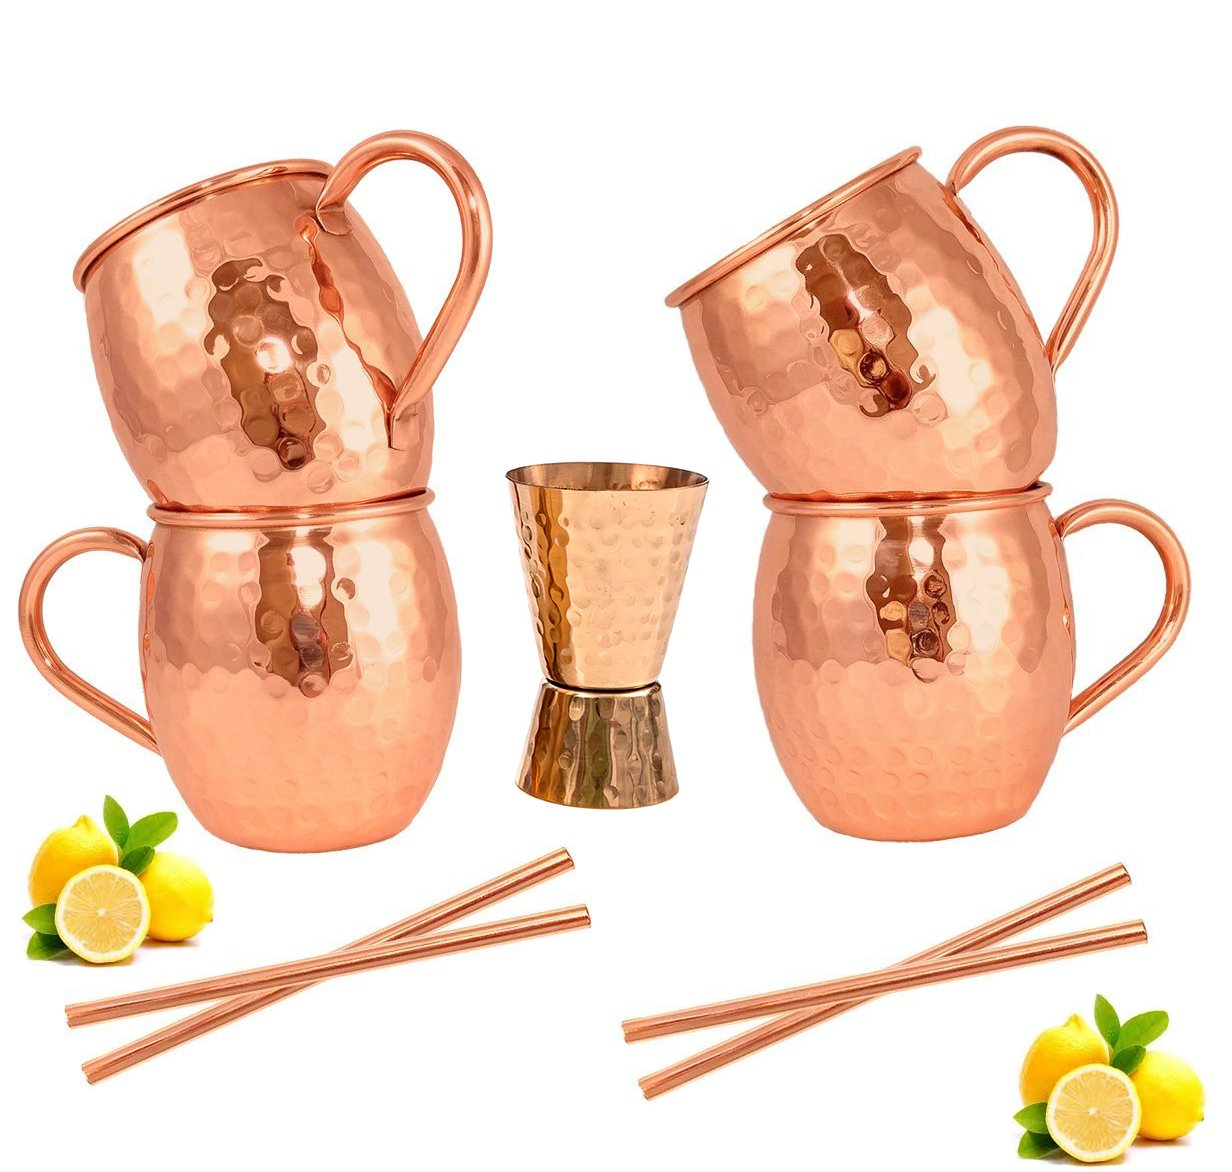 Moscow Mule Copper Mugs - Set of 4-100% HANDCRAFTED - Food Safe Pure Solid Copper Mugs - 16 oz Gift Set with BONUS: Highest Quality Cocktail Copper Straws and Jigger! (Curve)